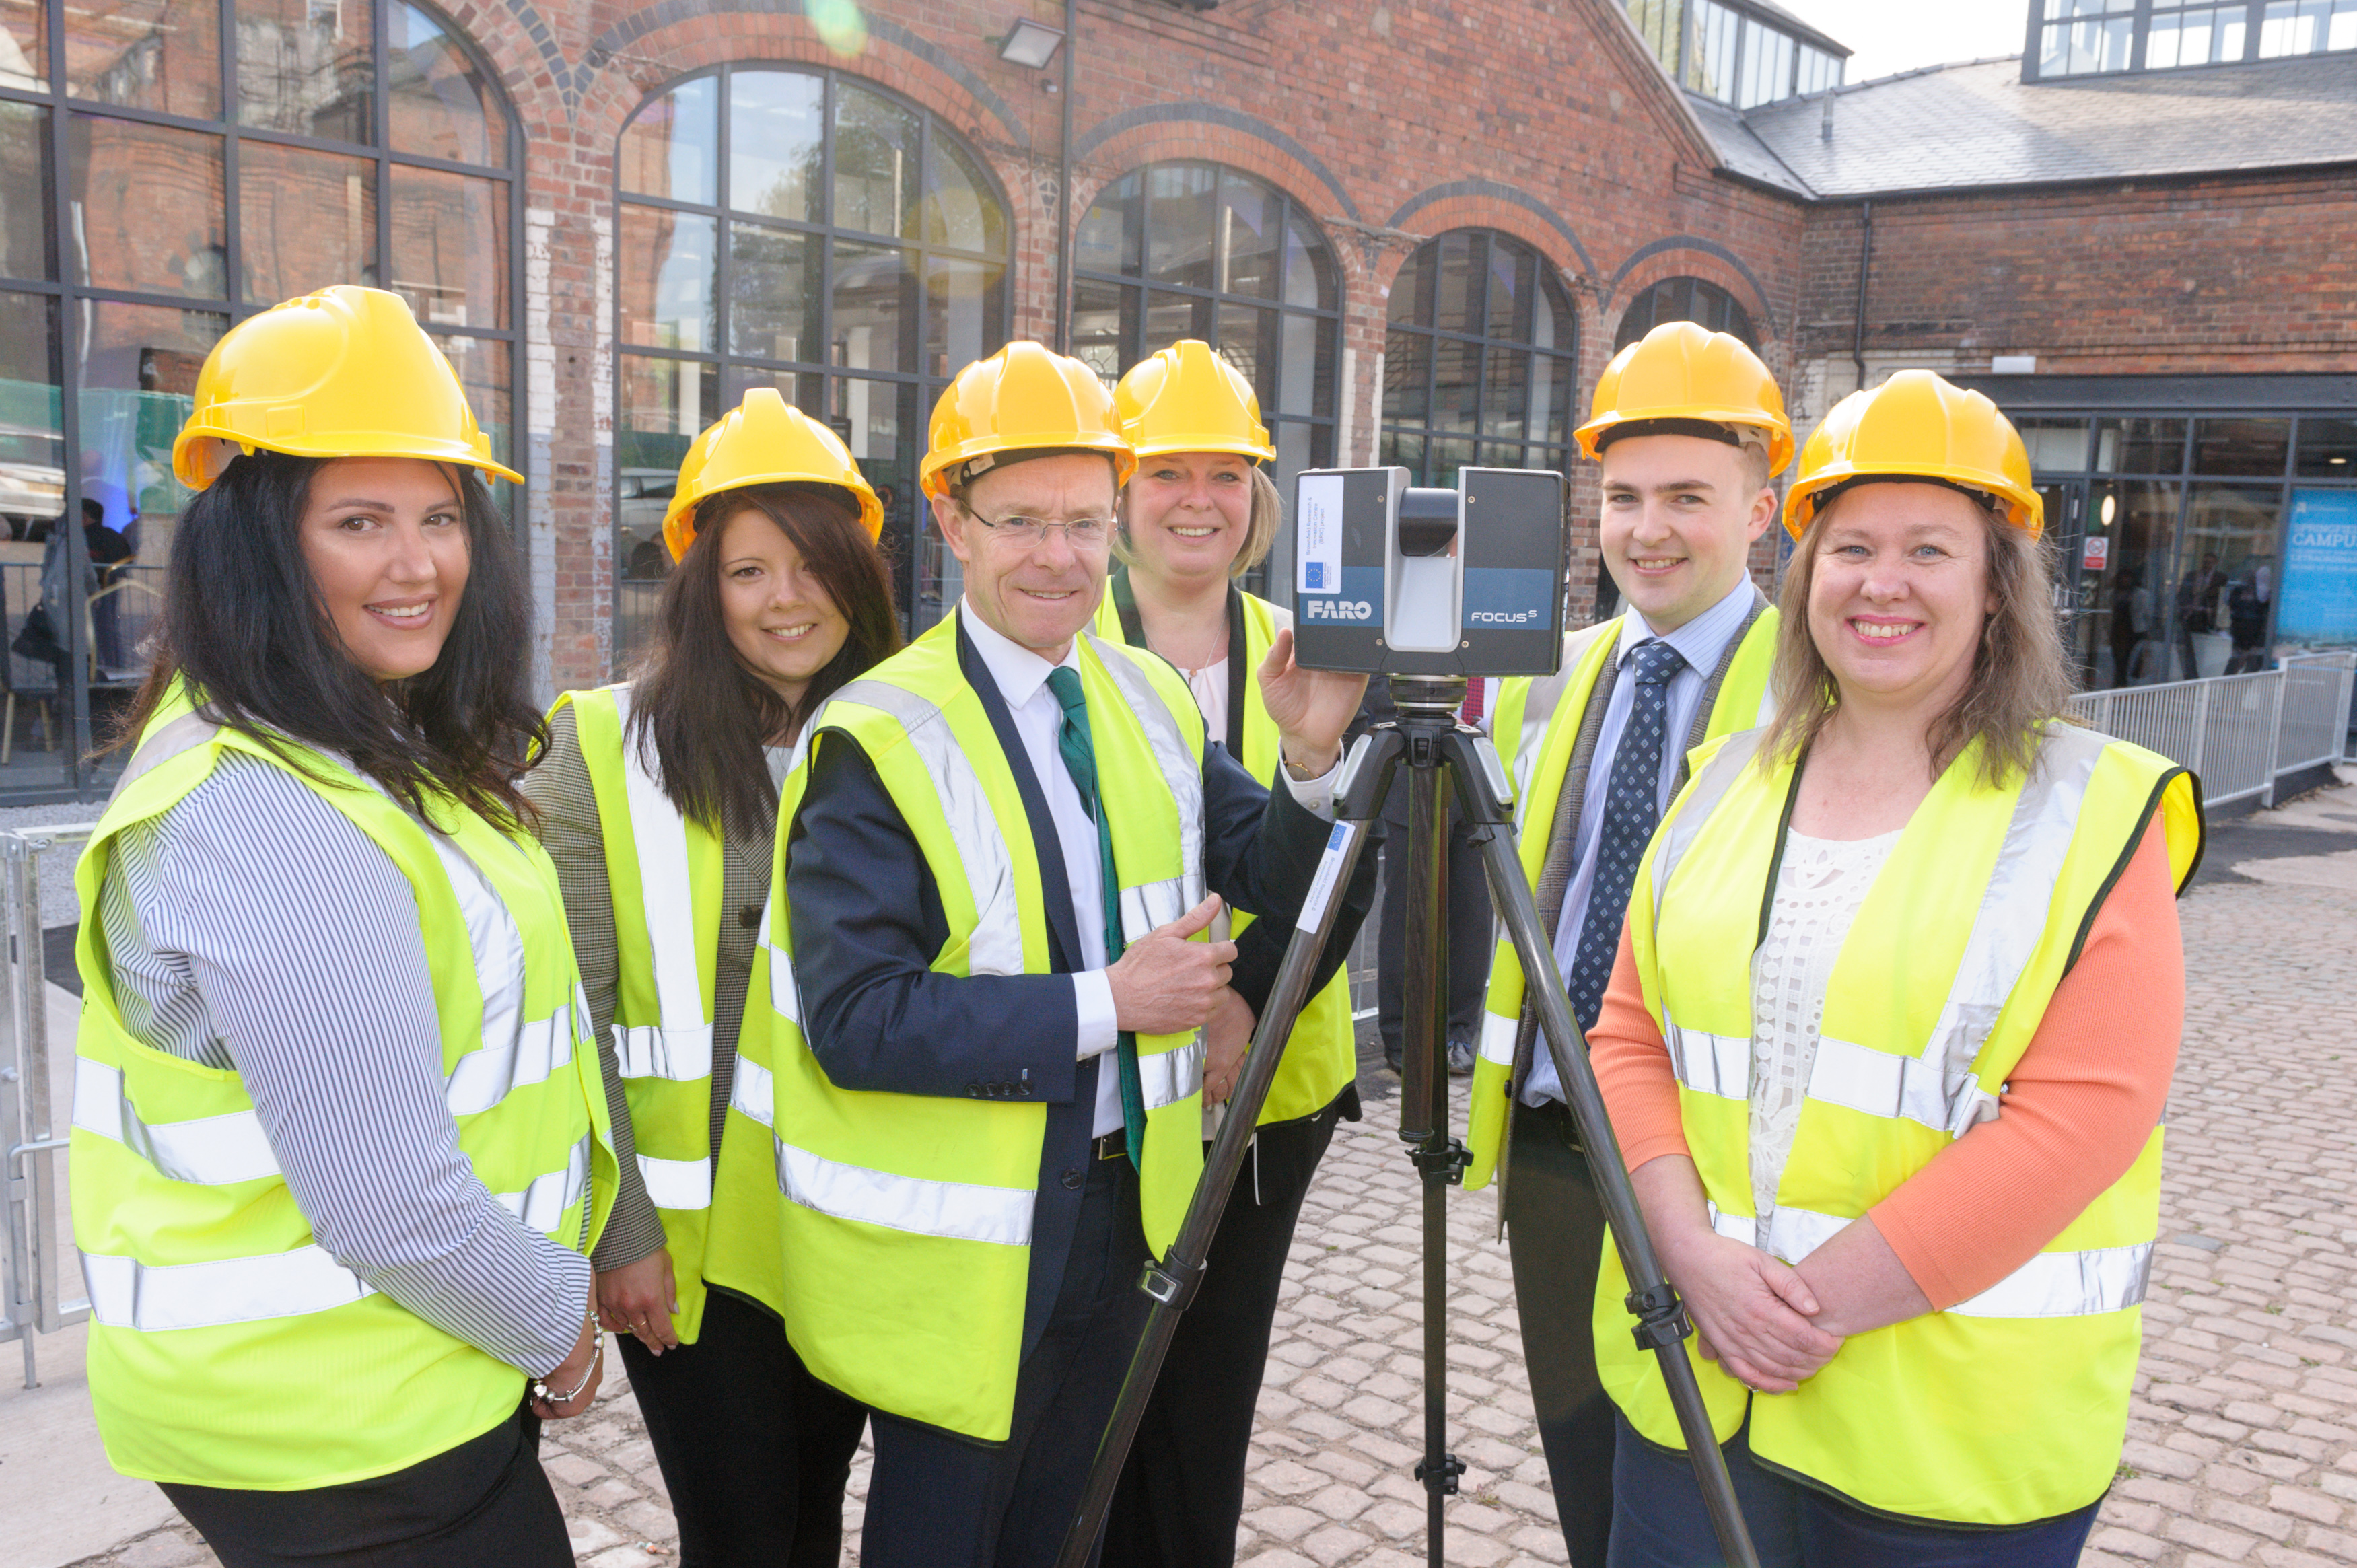 New National Institute to support brownfield redevelopment announced